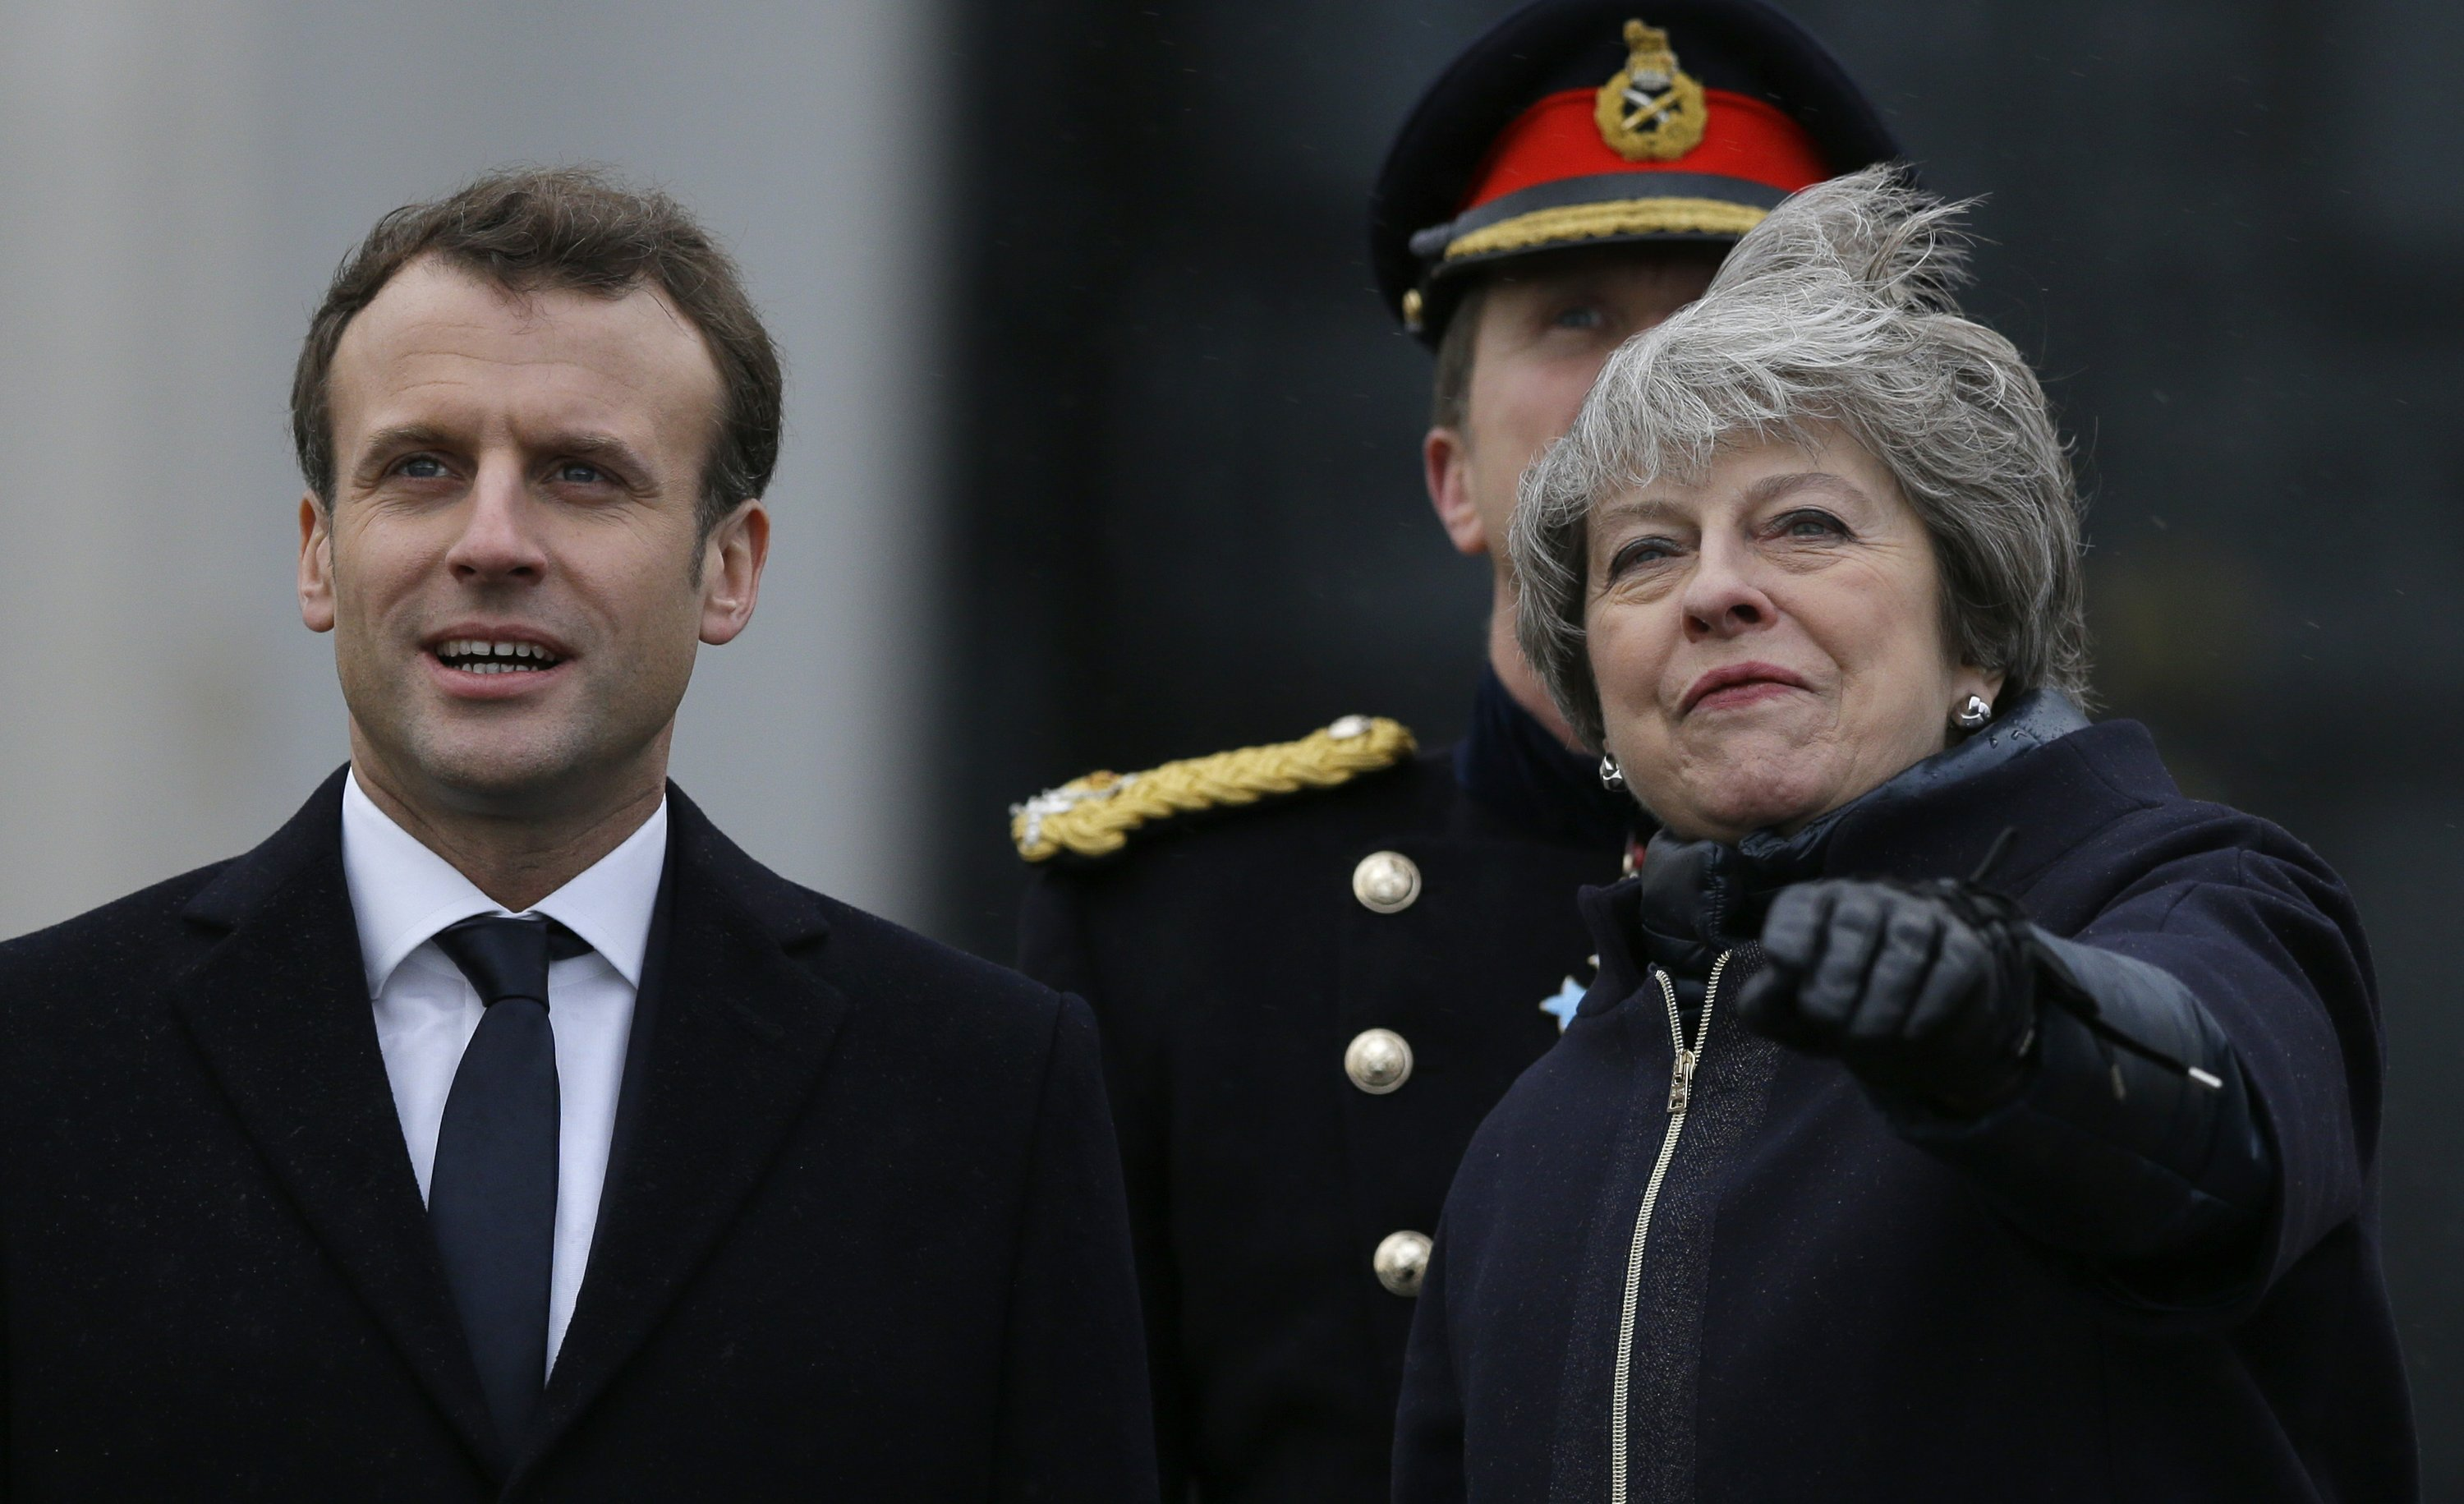 UK and French leaders reach border deal, disagree on Brexit